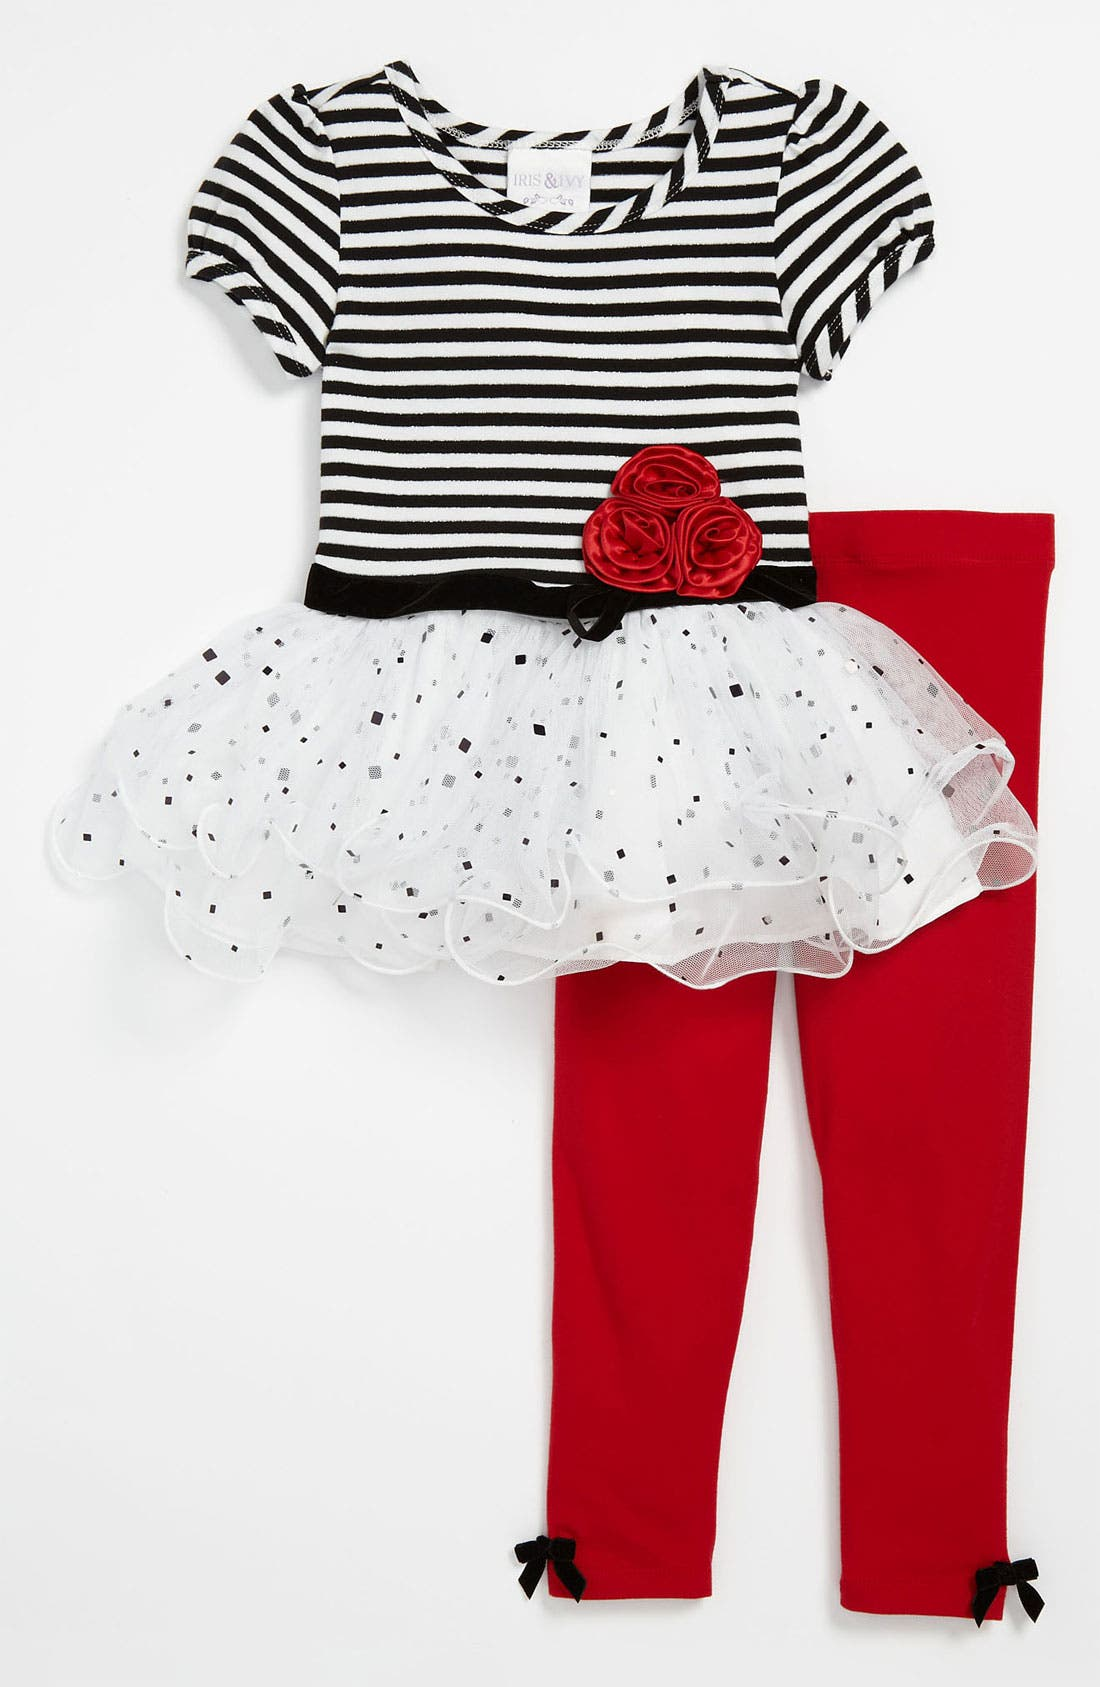 Alternate Image 1 Selected - Iris & Ivy Stripe Dress & Leggings (Toddler)